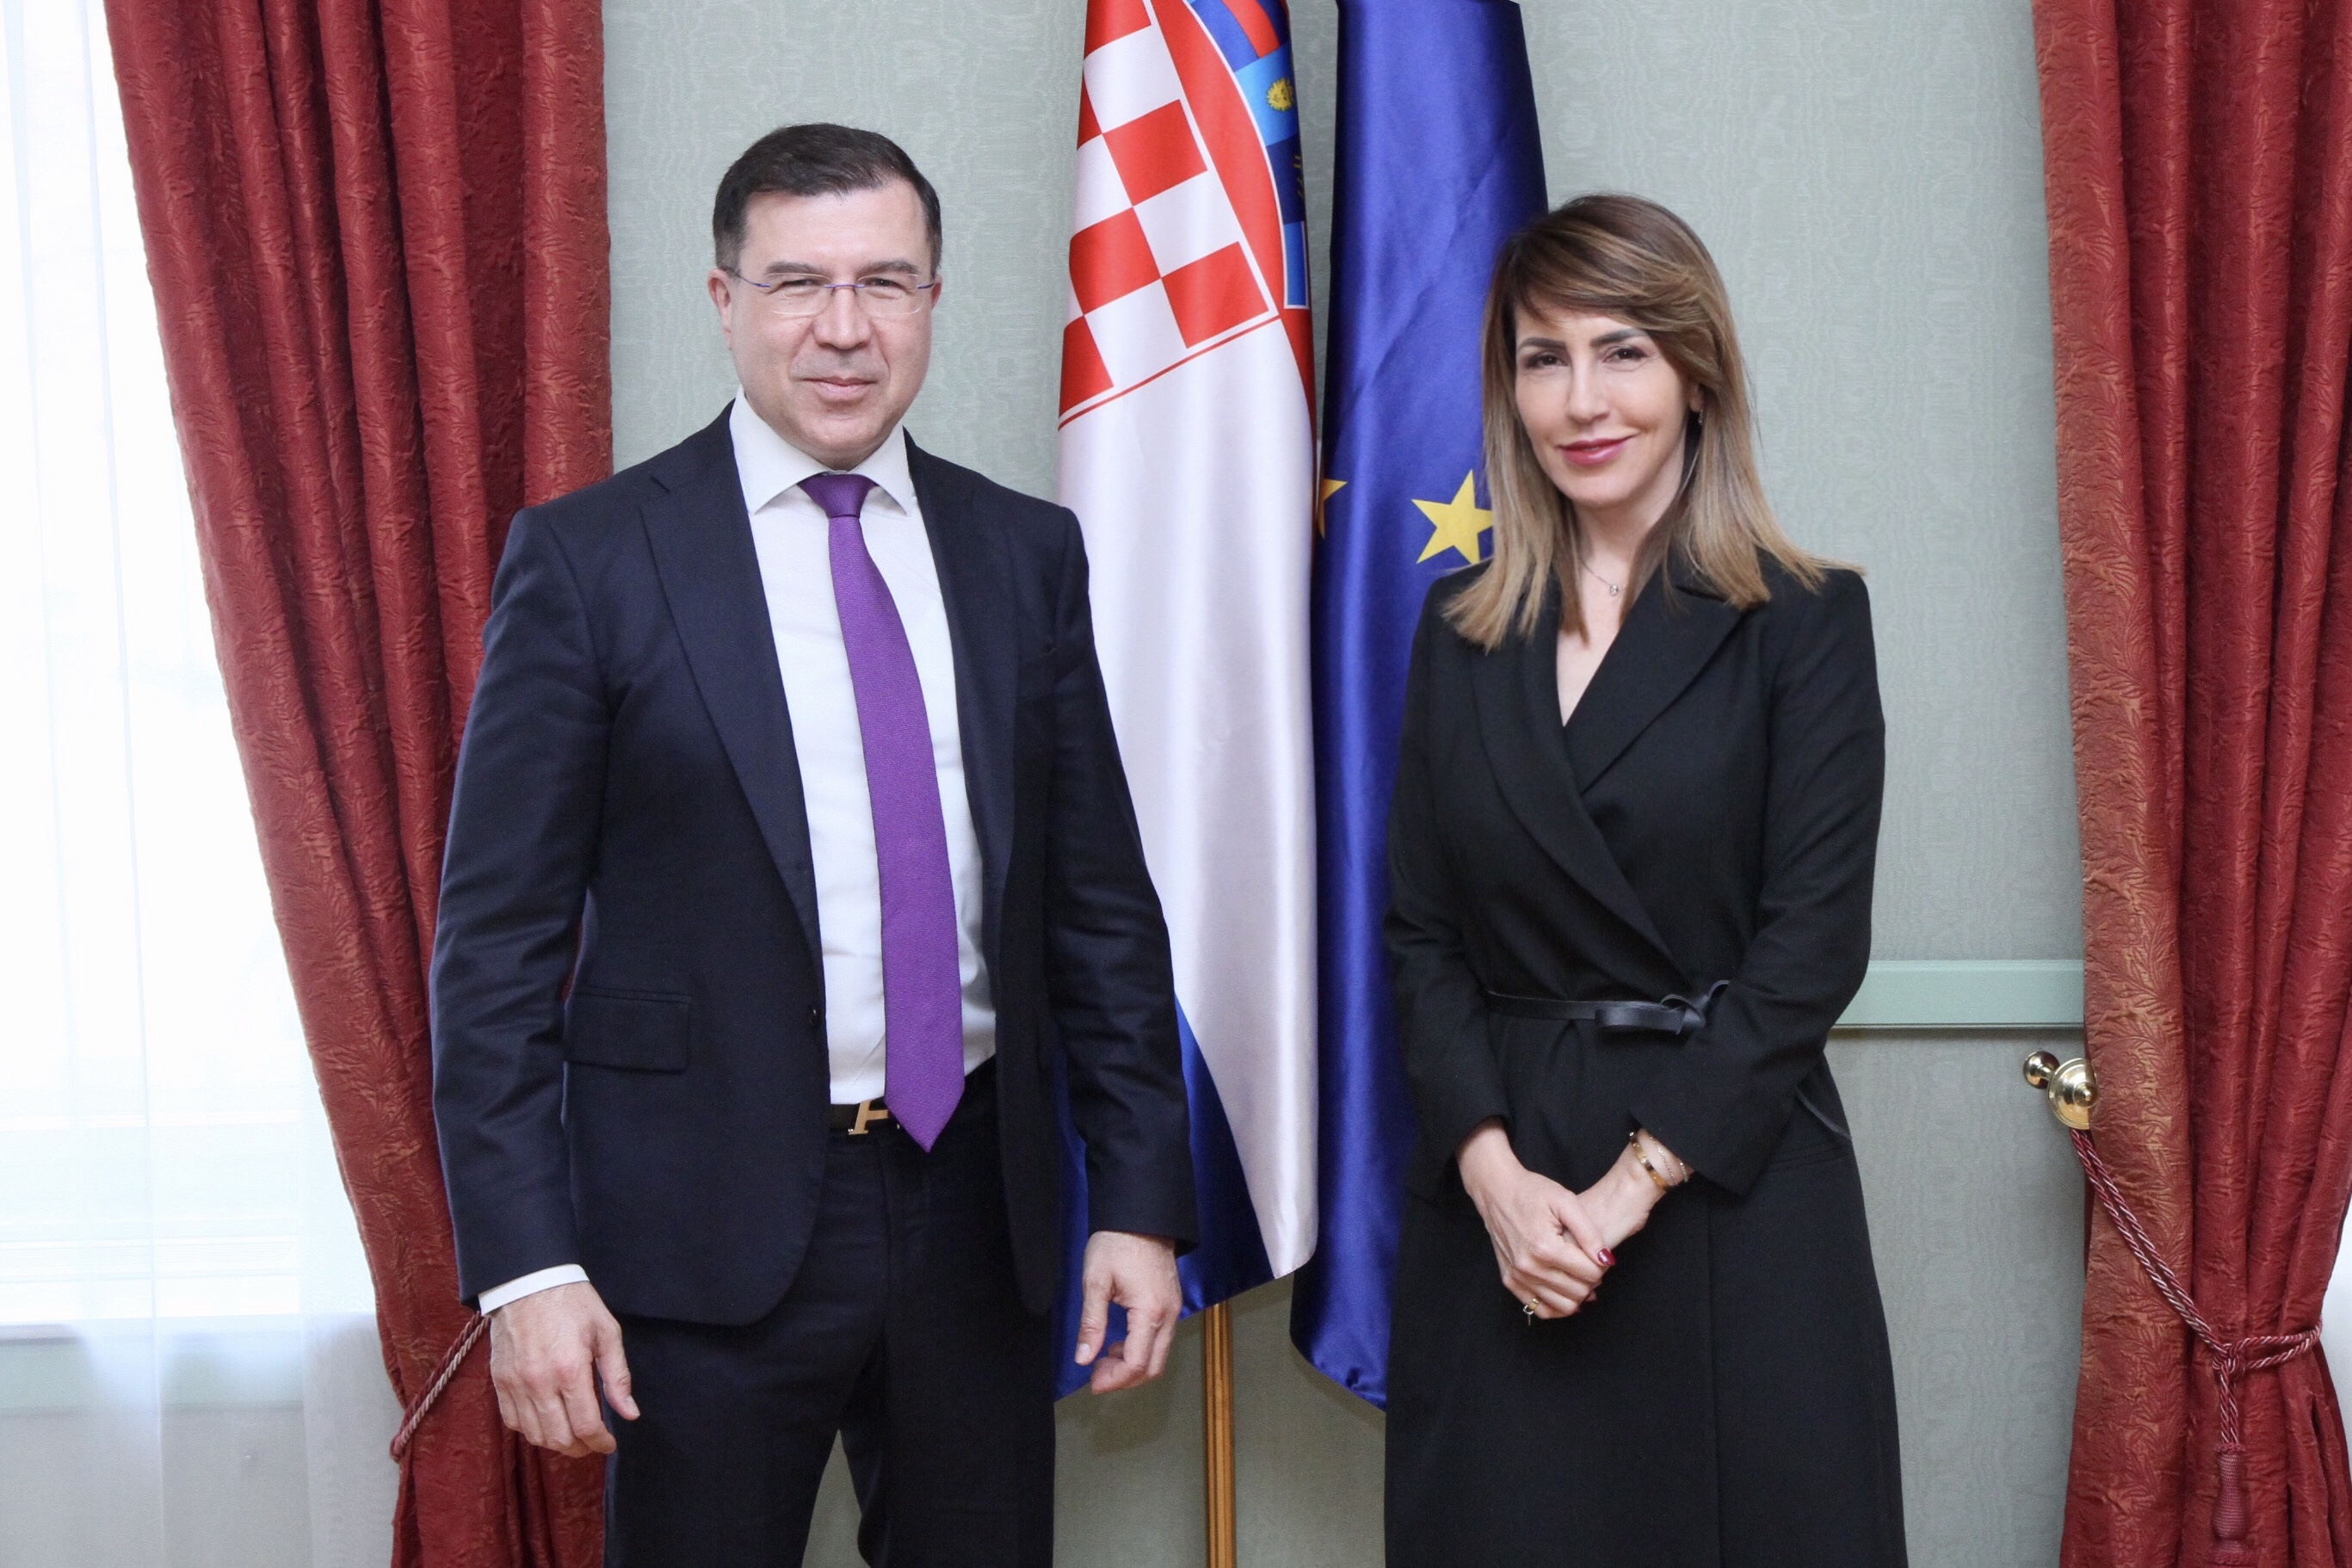 Secretary General of the Regional Cooperation Council (RCC) Majlinda Bregu with  Domagoj Ivan Milošević, Chairperson of the European Affairs Committee, during SG's official visit to Croatia,in Zagreb on 18 April 2019 (Photo: Courtesy of Croatian Parliament)